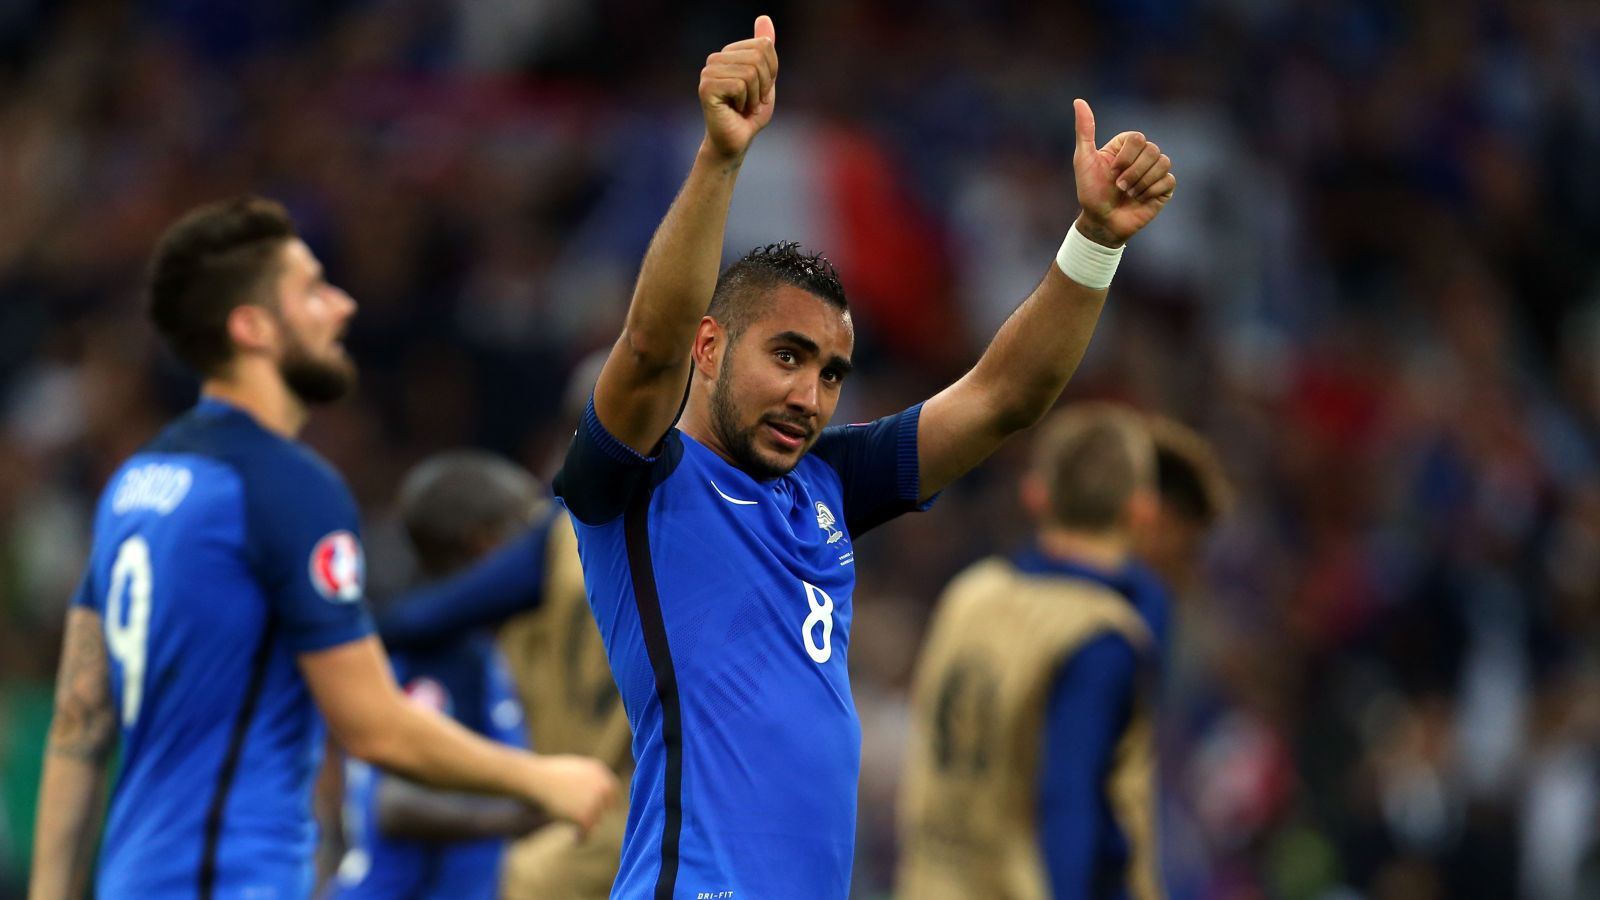 Real Madrid, Chelsea keeping tabs on West Ham star Payet